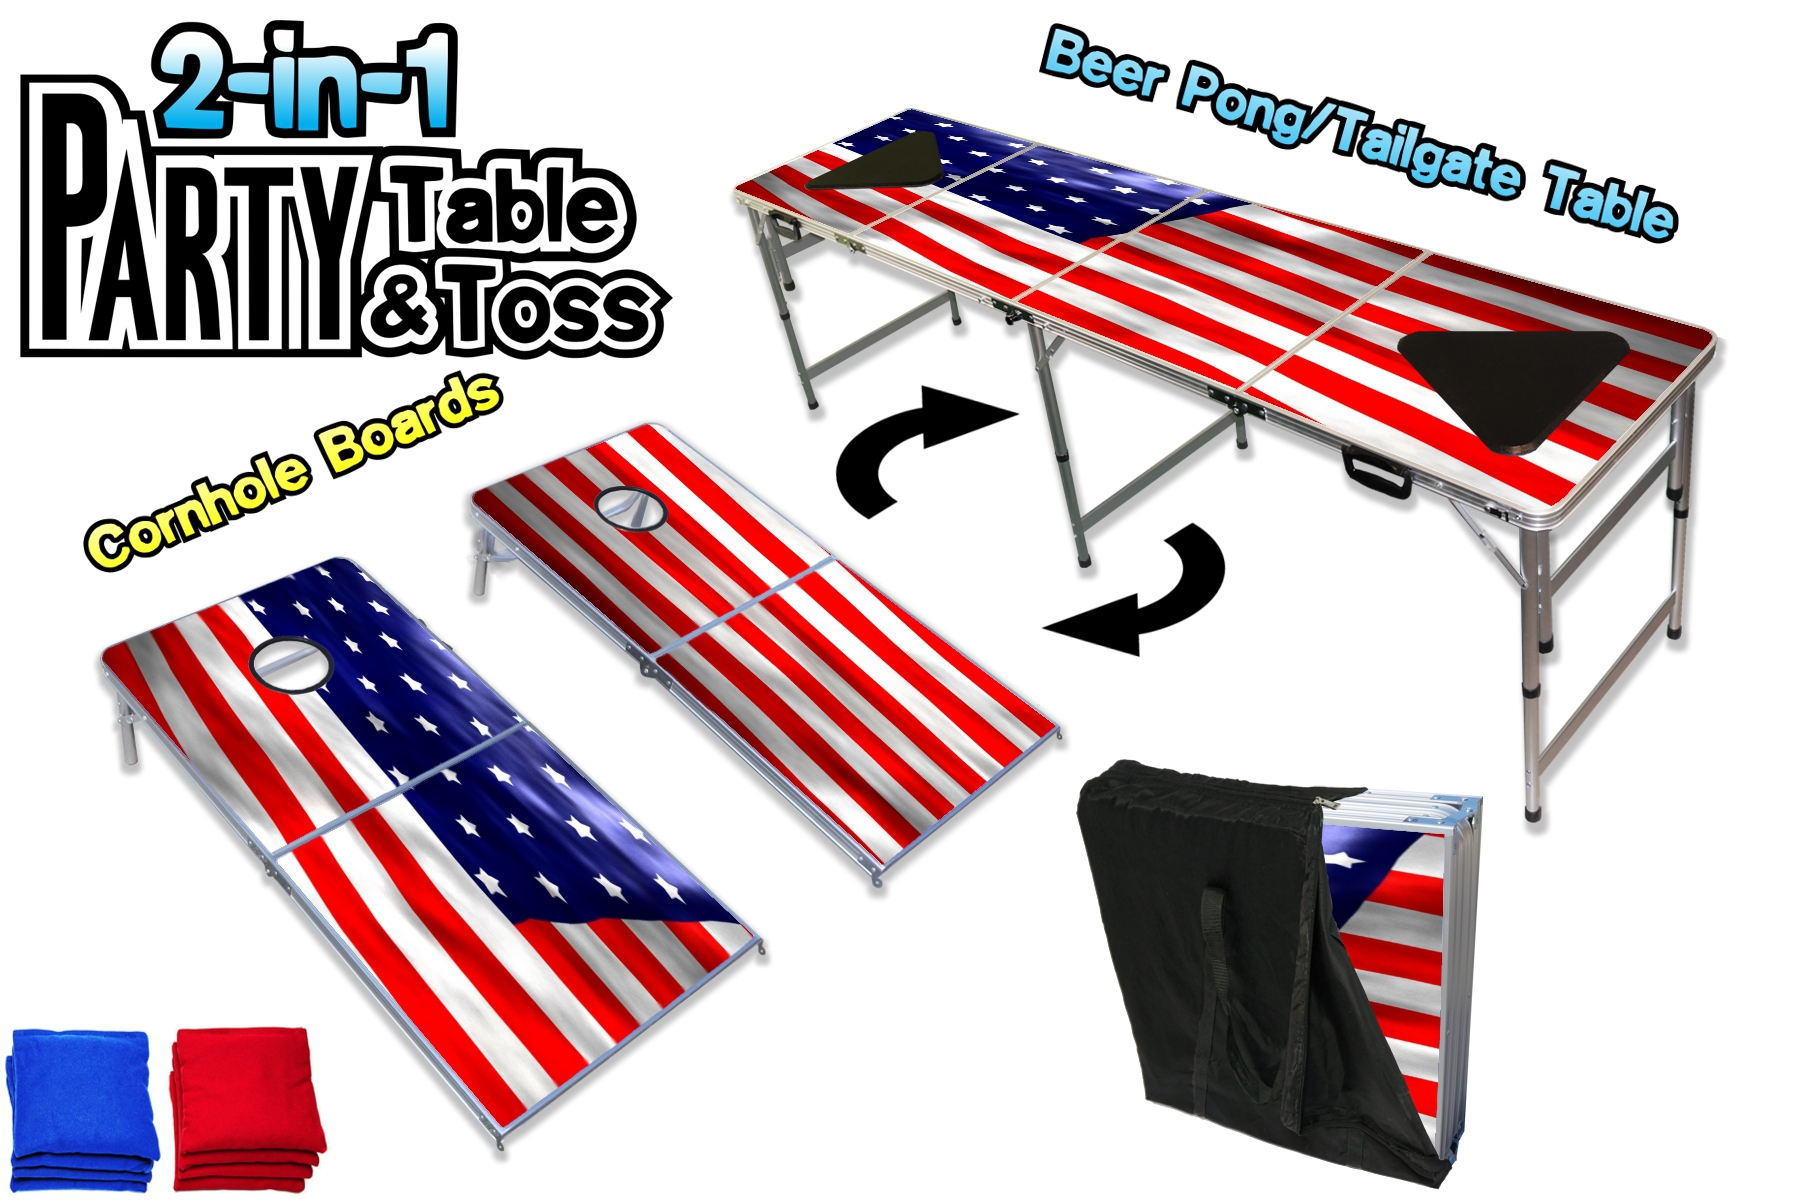 2-in-1 party table & Toss - The 2-in-1 Party Pong Table & Toss combines 2 products into one portable and affordable party companion. With patent-pending design, the Party Pong Table & Toss quickly converts from Party Toss Boards to Party Pong Table in 1 min.